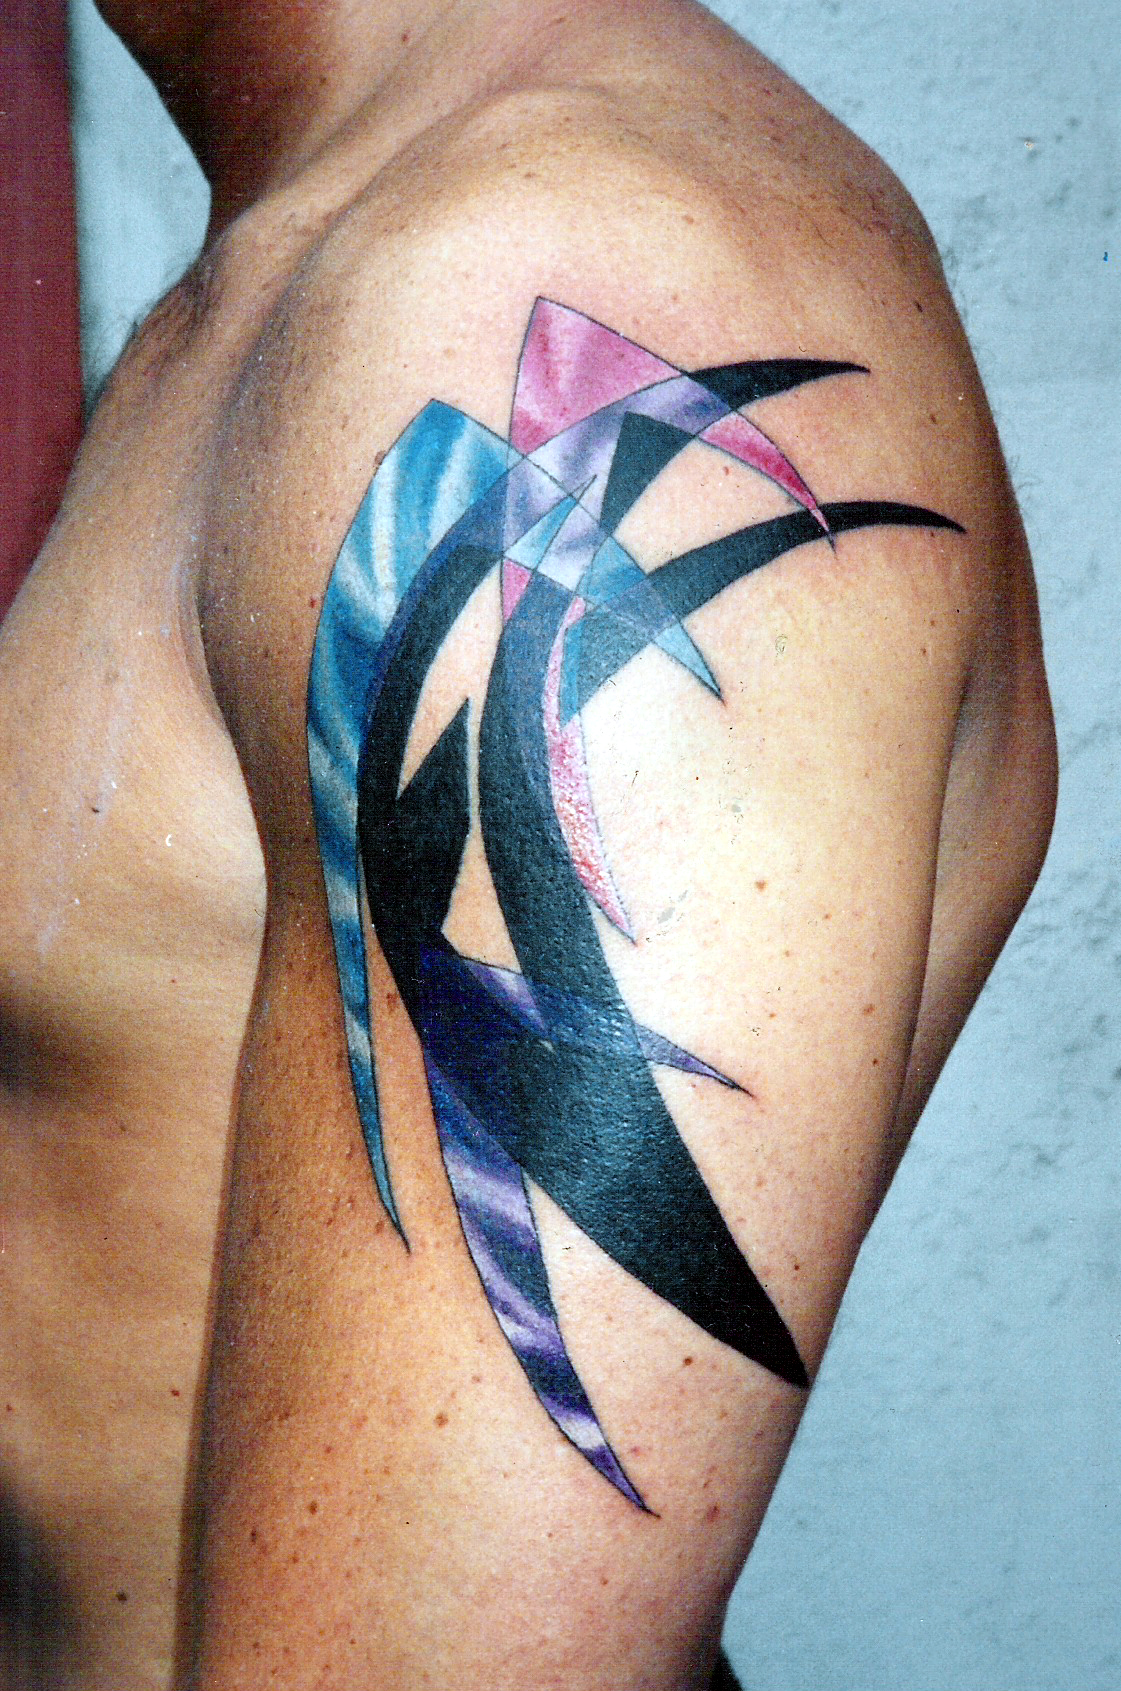 Pin candle flame abstract tattoos for men on upper leg thigh on